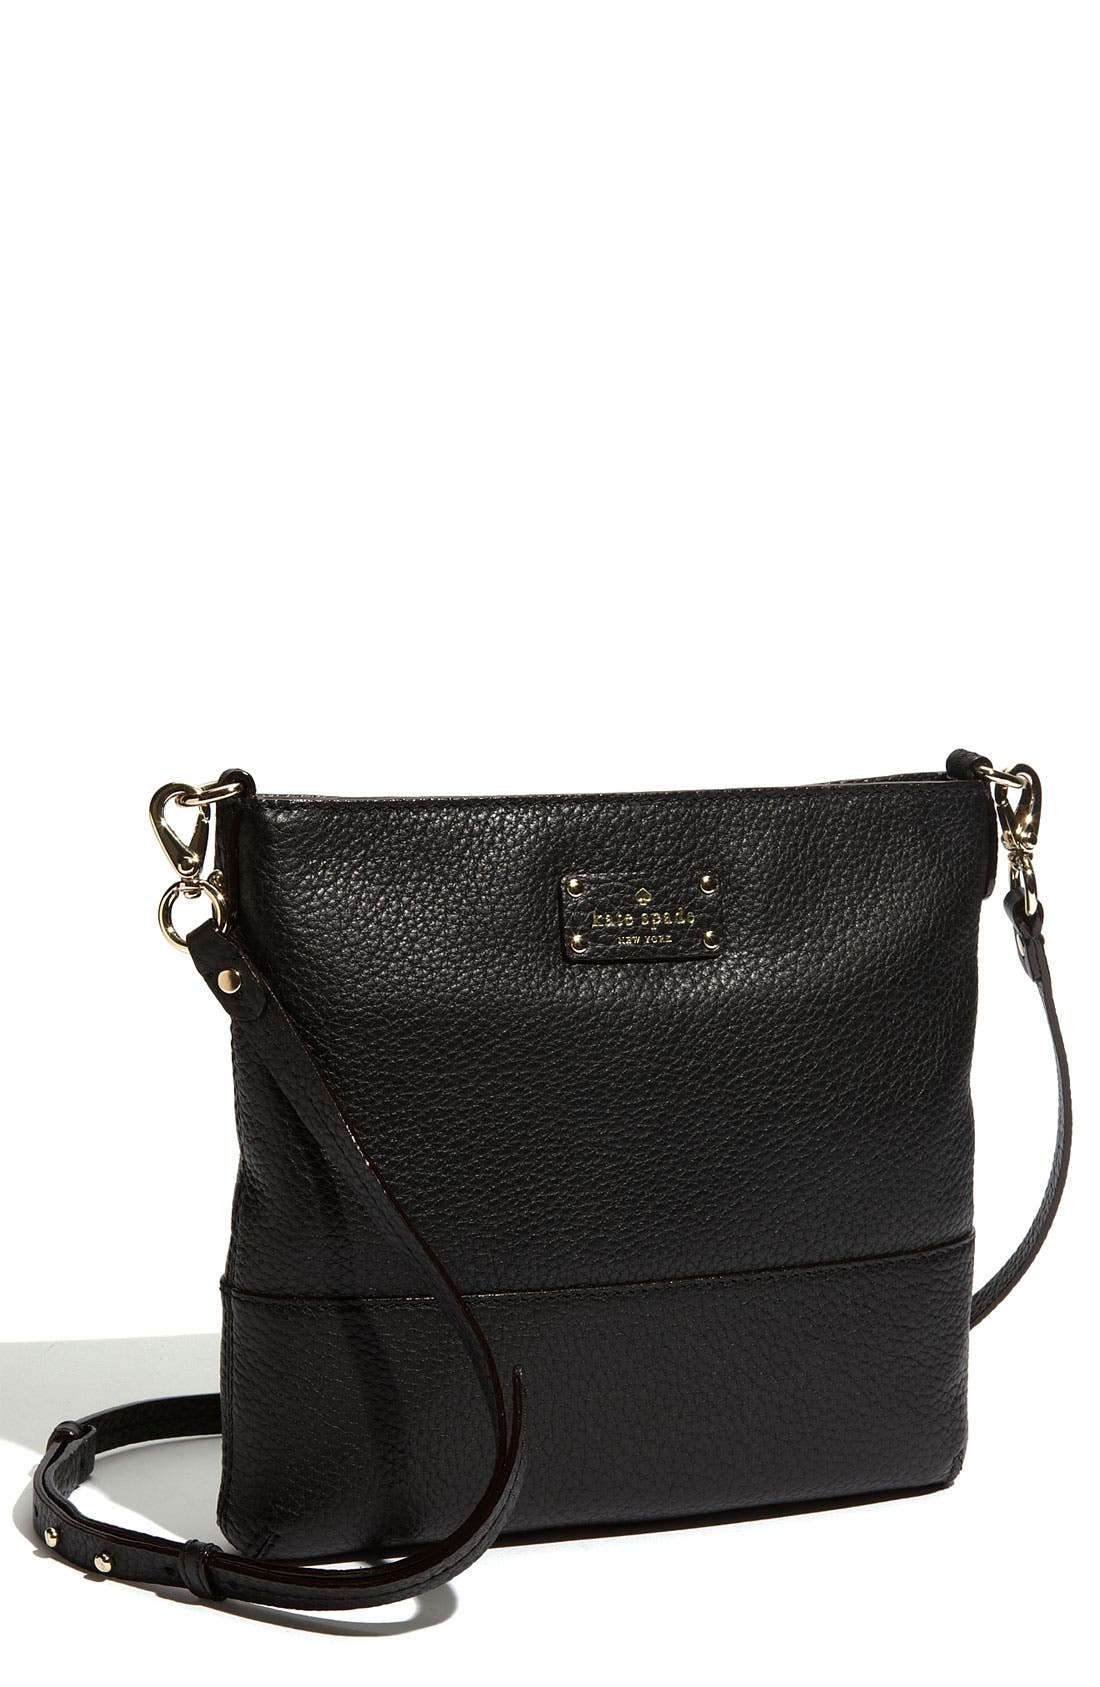 Main Image - kate spade new york 'grove court - cora' crossbody